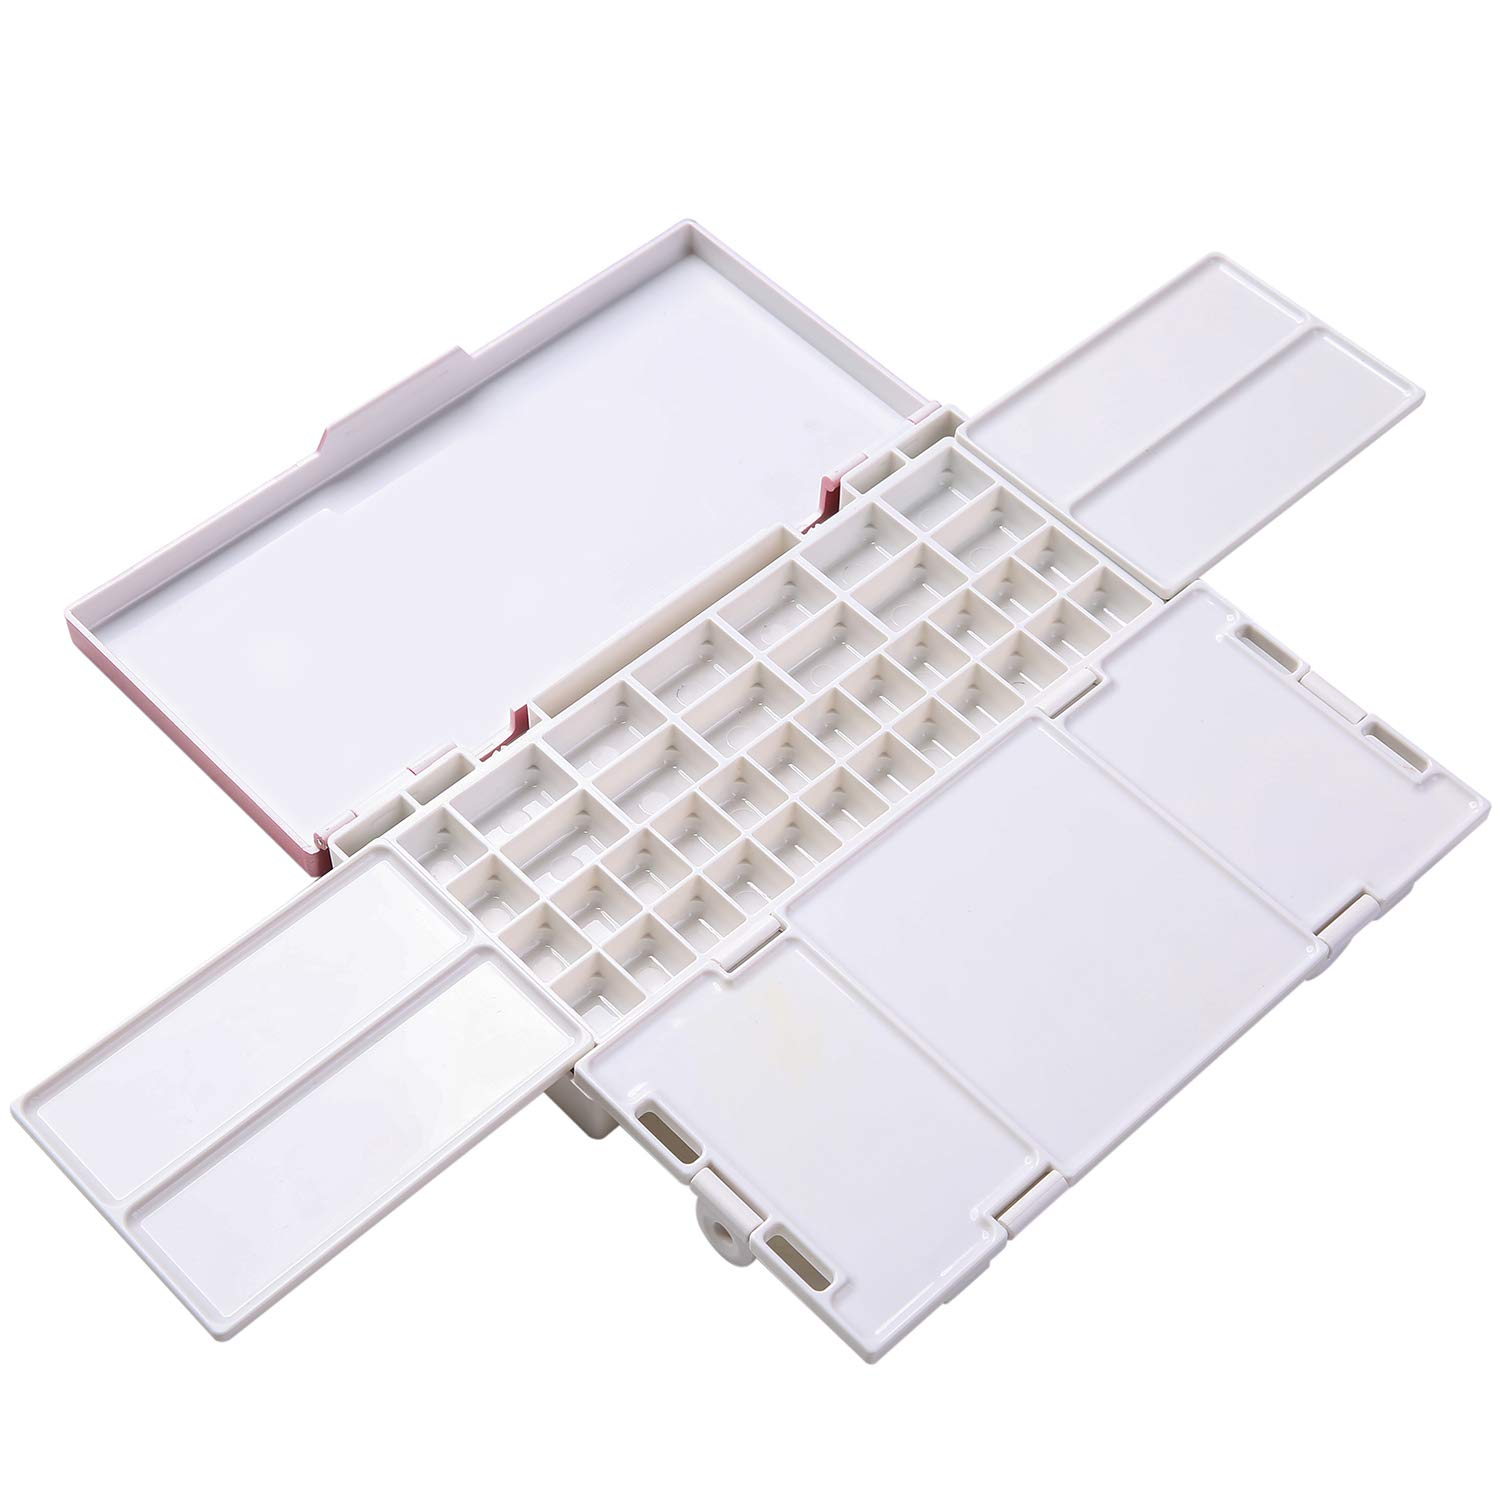 Acrylic /& Oil Paint MEEDEN Airtight Leakproof Watercolor Paint Palette Travel Portable Folding Palette Box with 4 Mixing Areas 38 Wells for Watercolor Pink